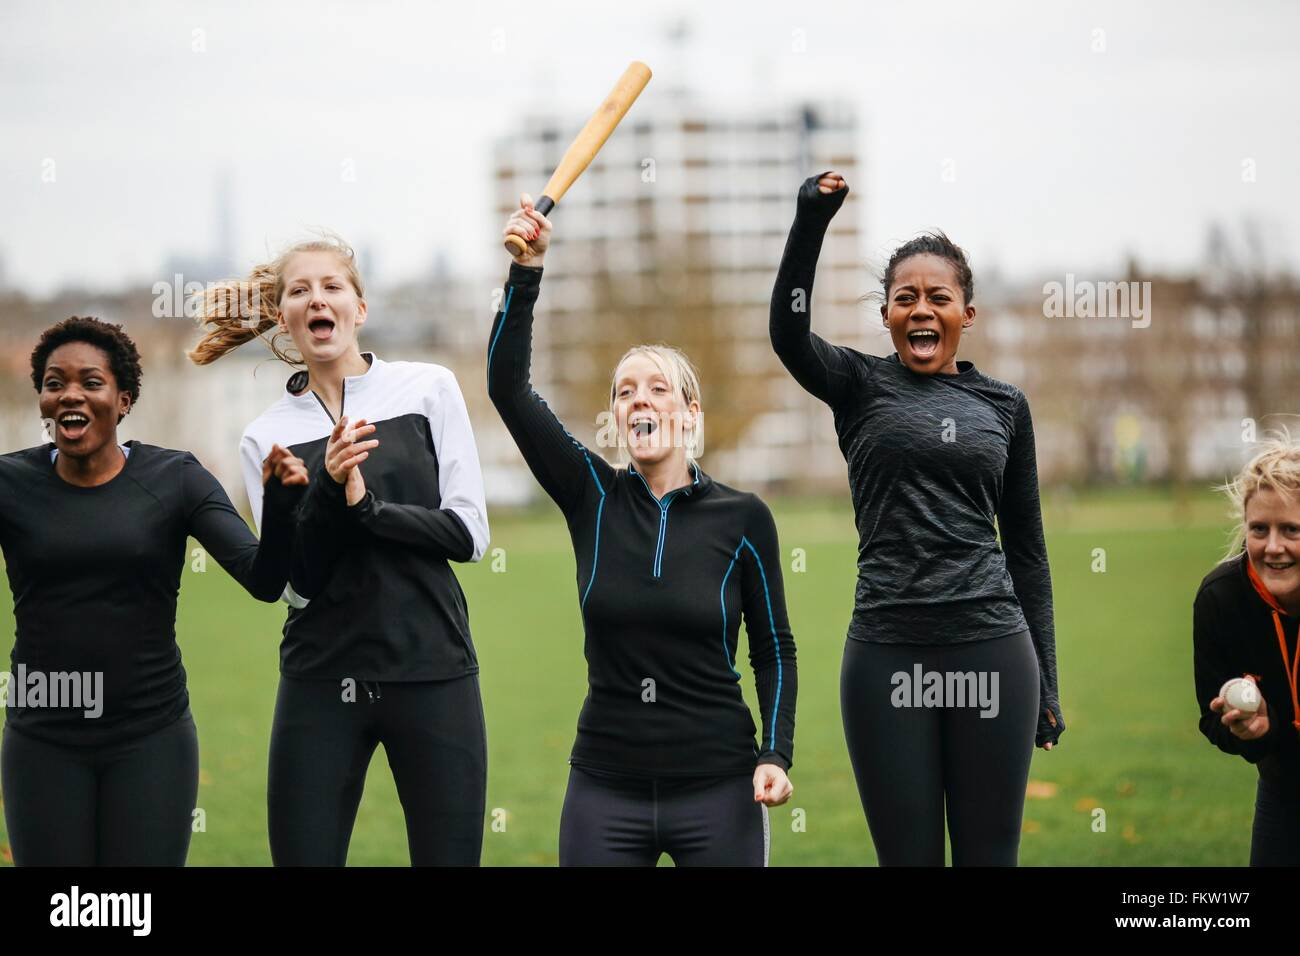 Female rounders team cheering at rounders match - Stock Image